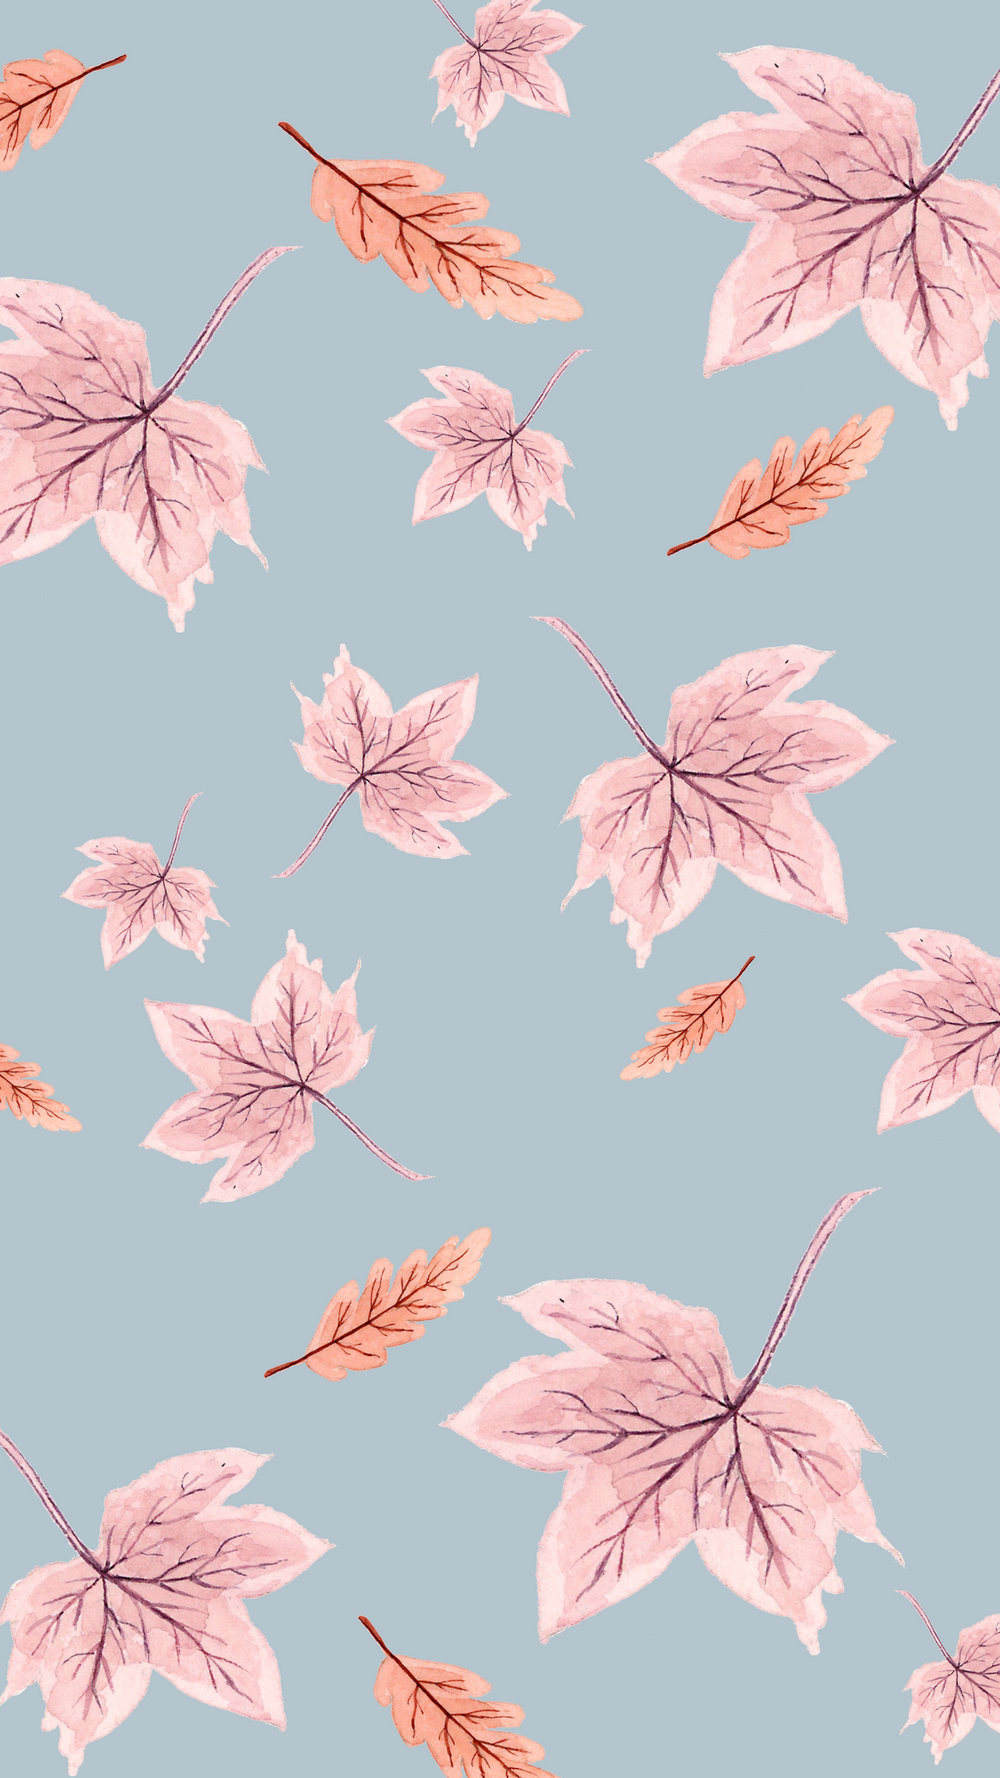 Fall-Cell-Phone-Wallpaper-Background-Leaves-Blue.jpg